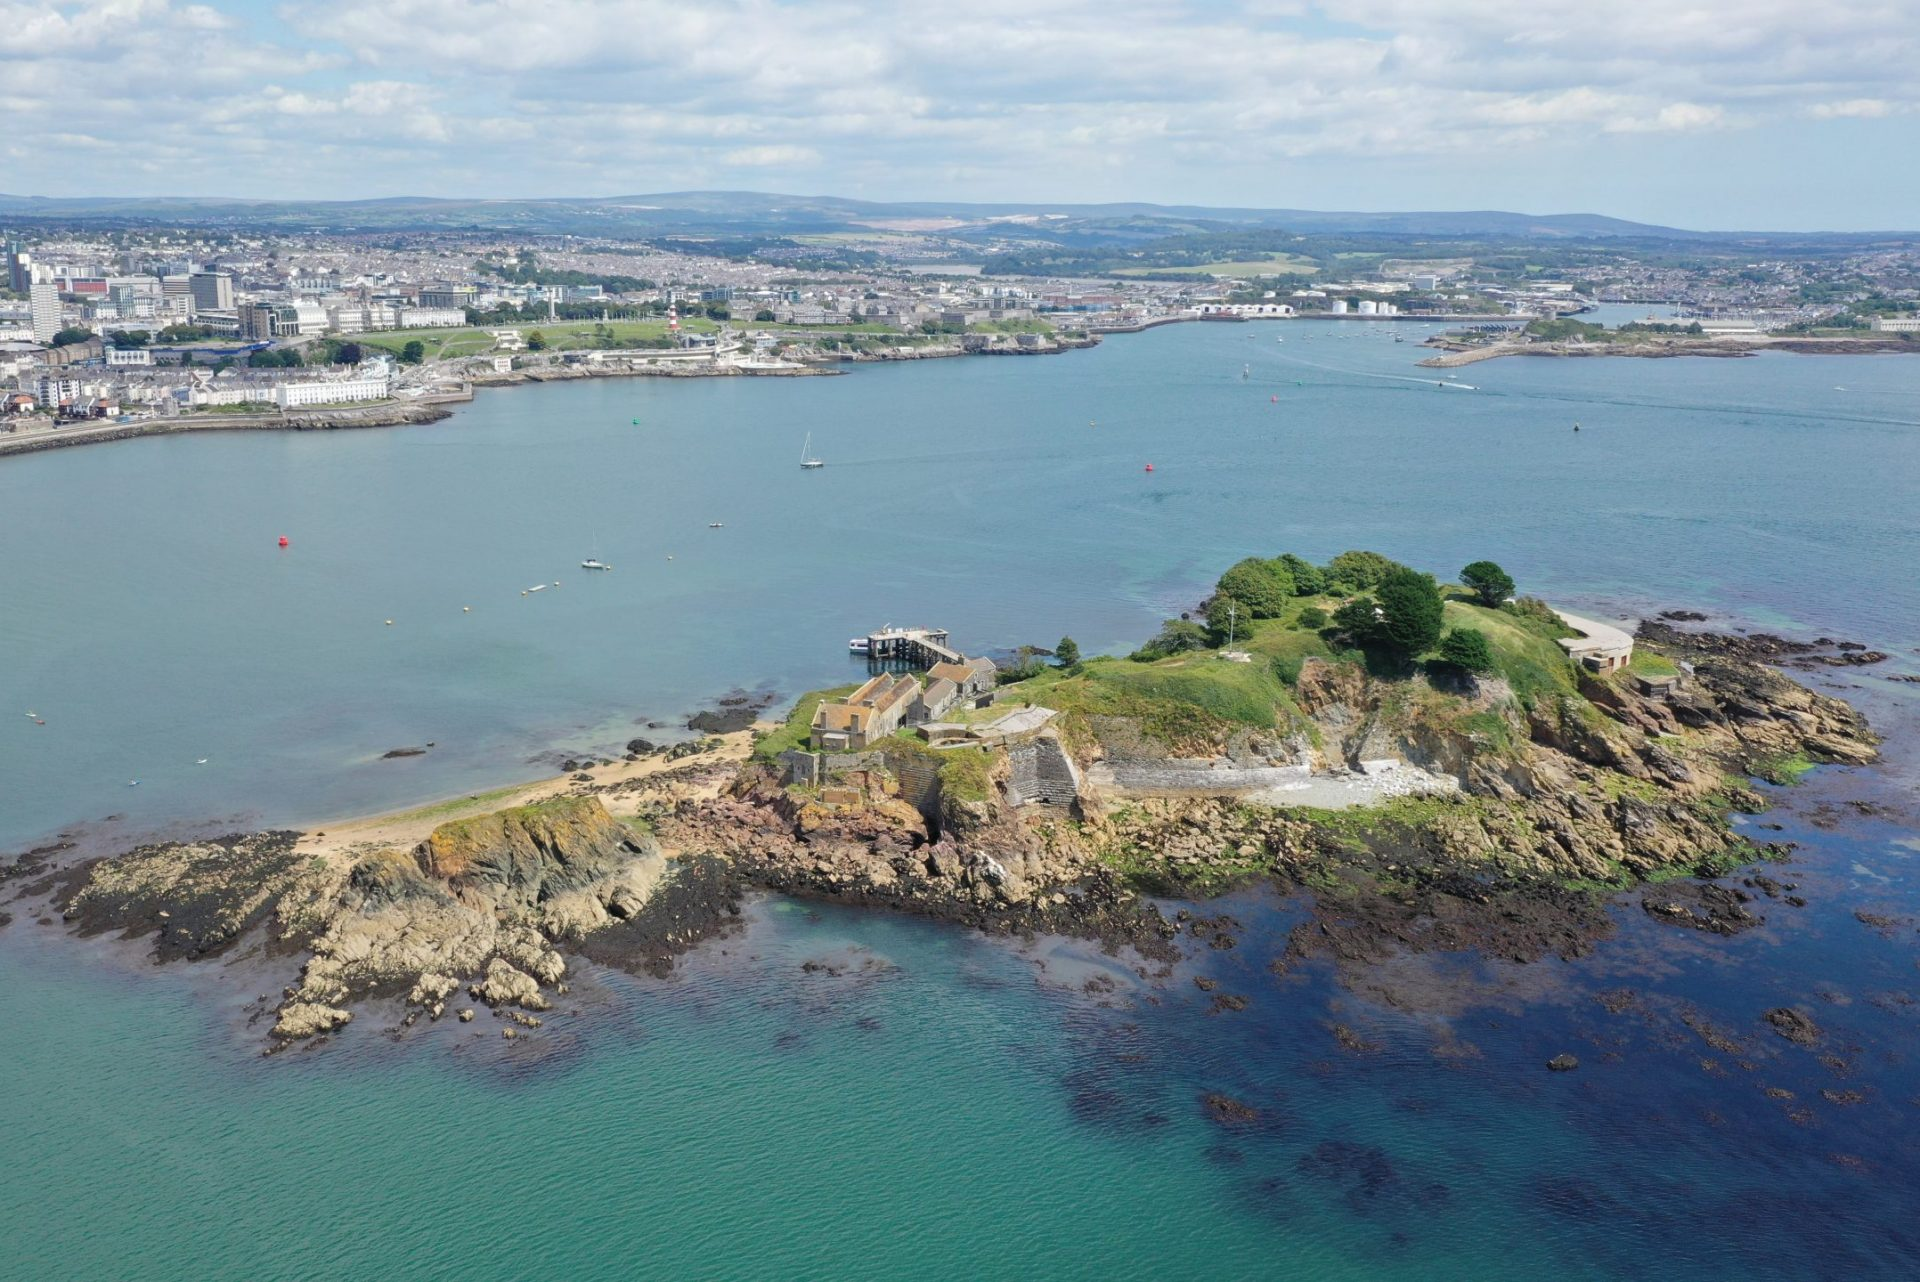 a photo of Plymouth Sound with Drake's Island in the foreground.